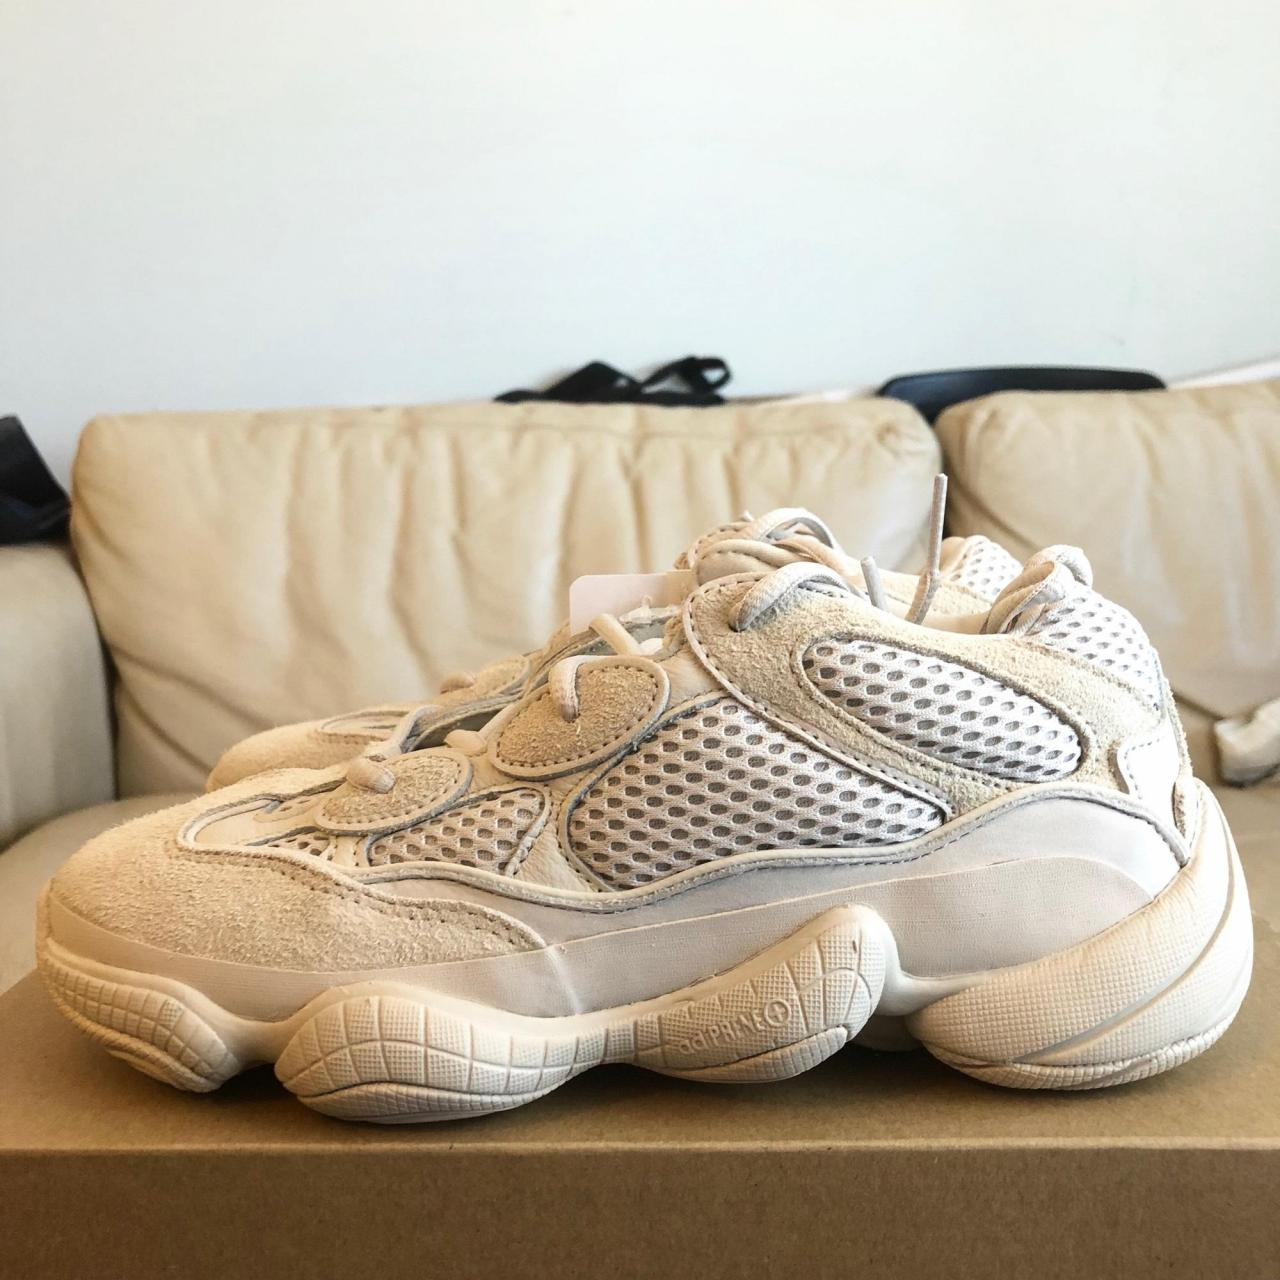 ccbc610c45622 Replica Shoes Lowest Price adidas X Yeezy Beige 500 Blush Desert Rat Db2908  Ship Now Sneakers. Replica Adidas Shoes